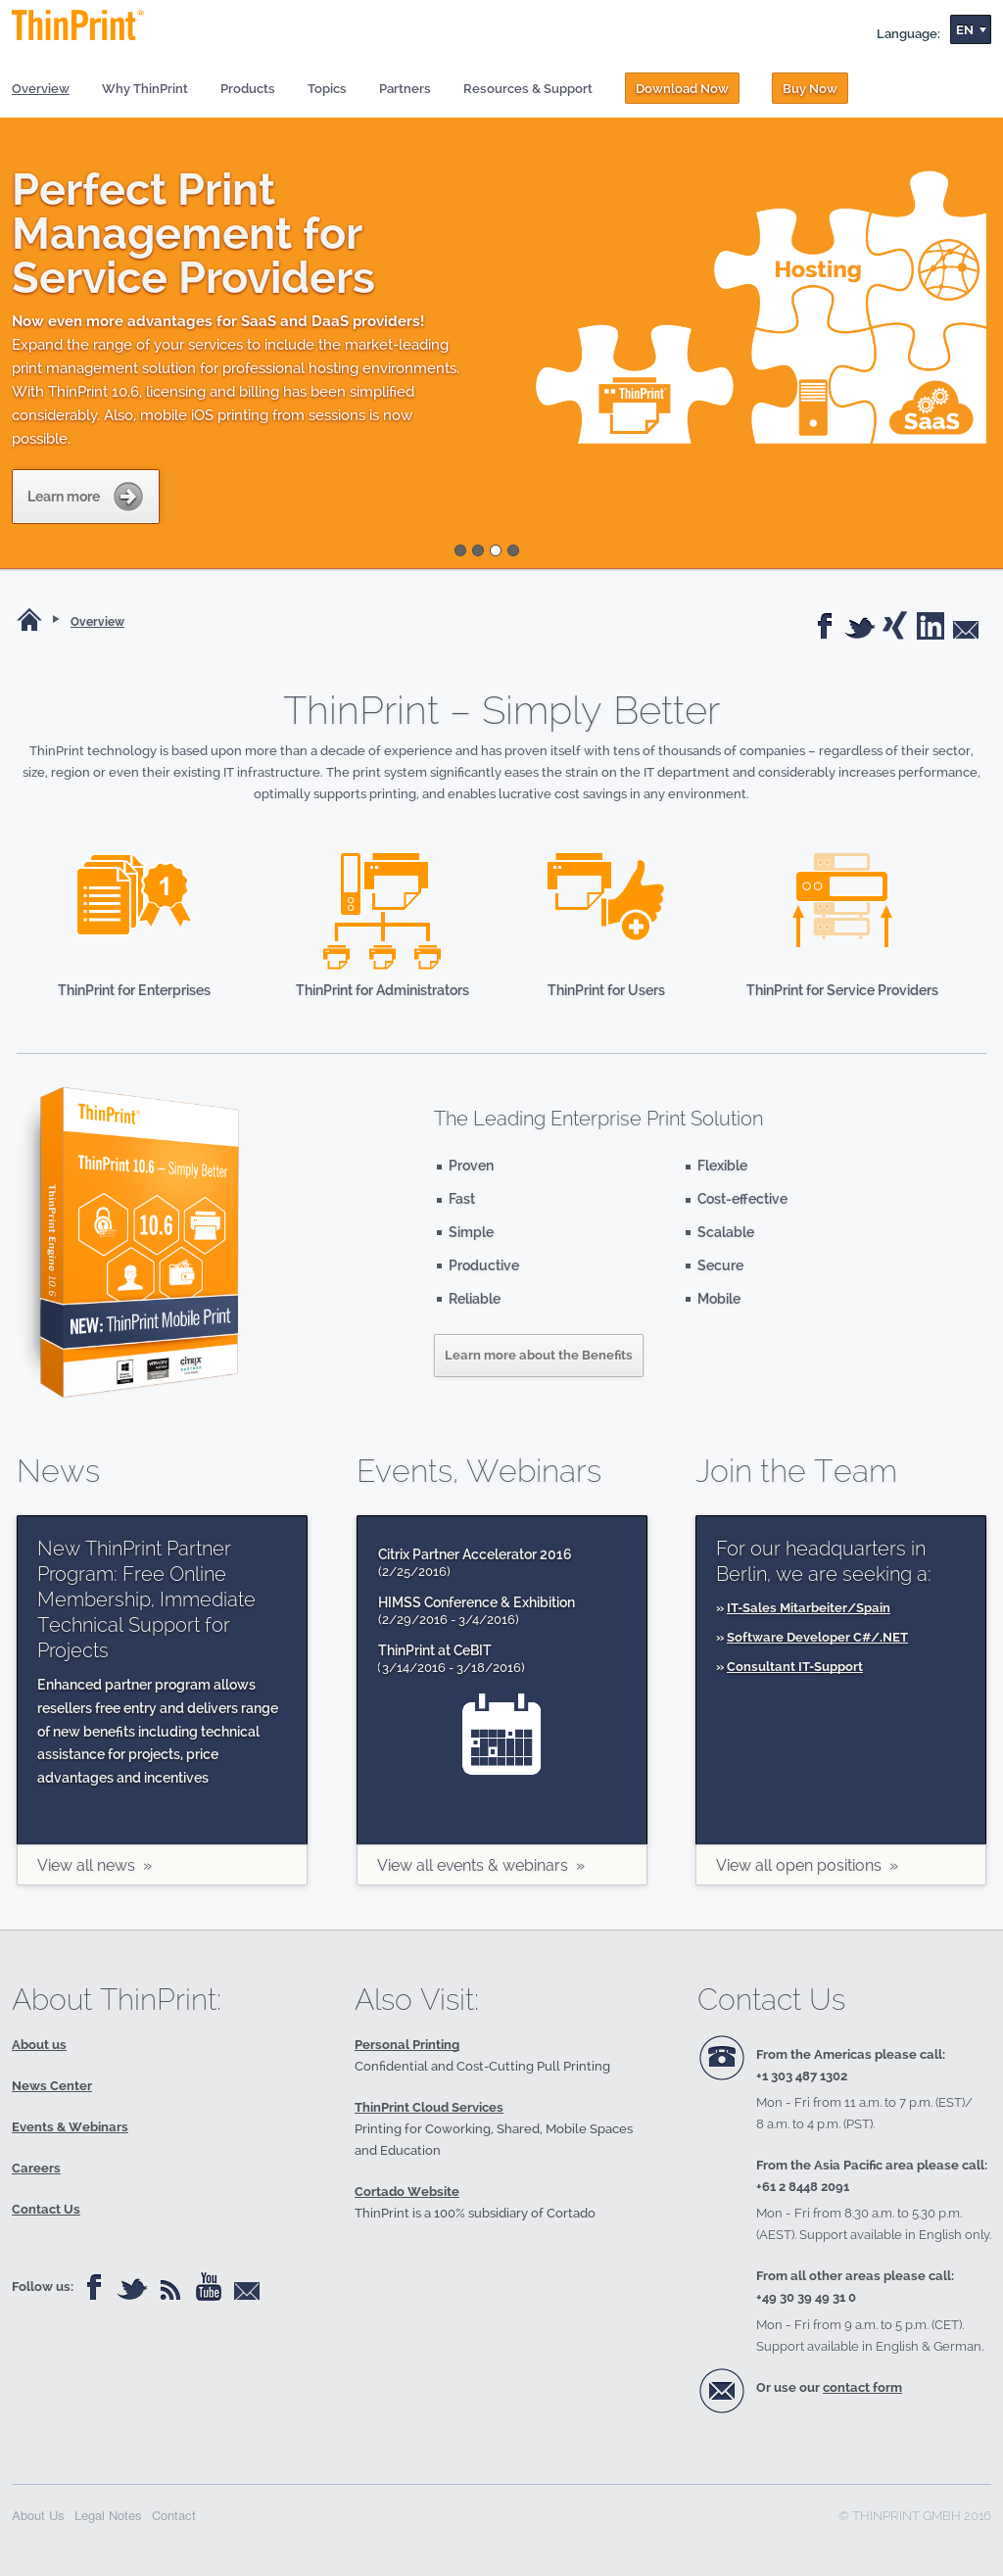 ThinPrint Competitors, Revenue and Employees - Owler Company Profile